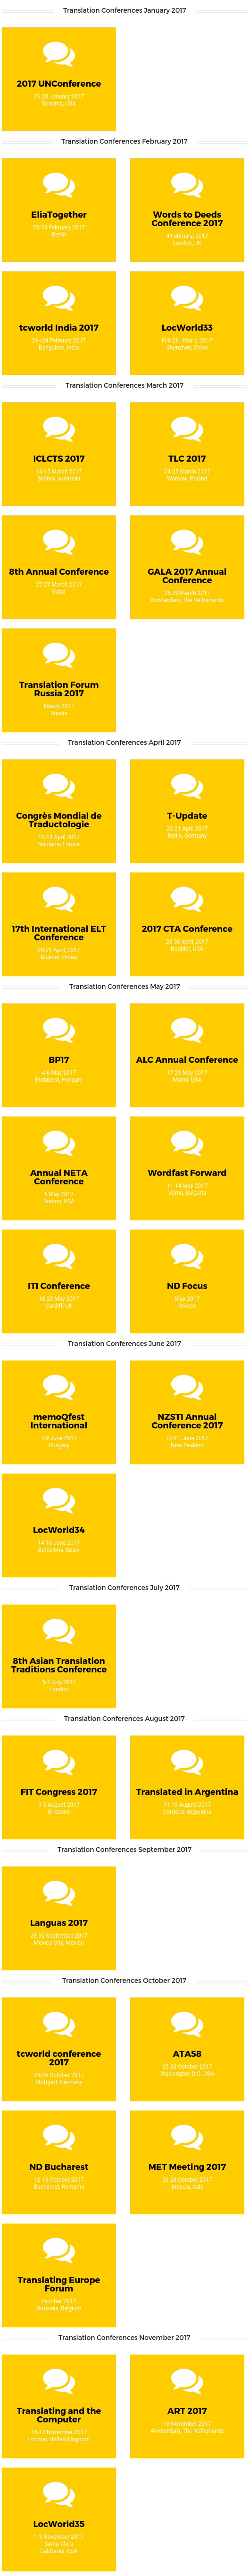 Translation Conferences 2017 - Overview by Pieter Beens